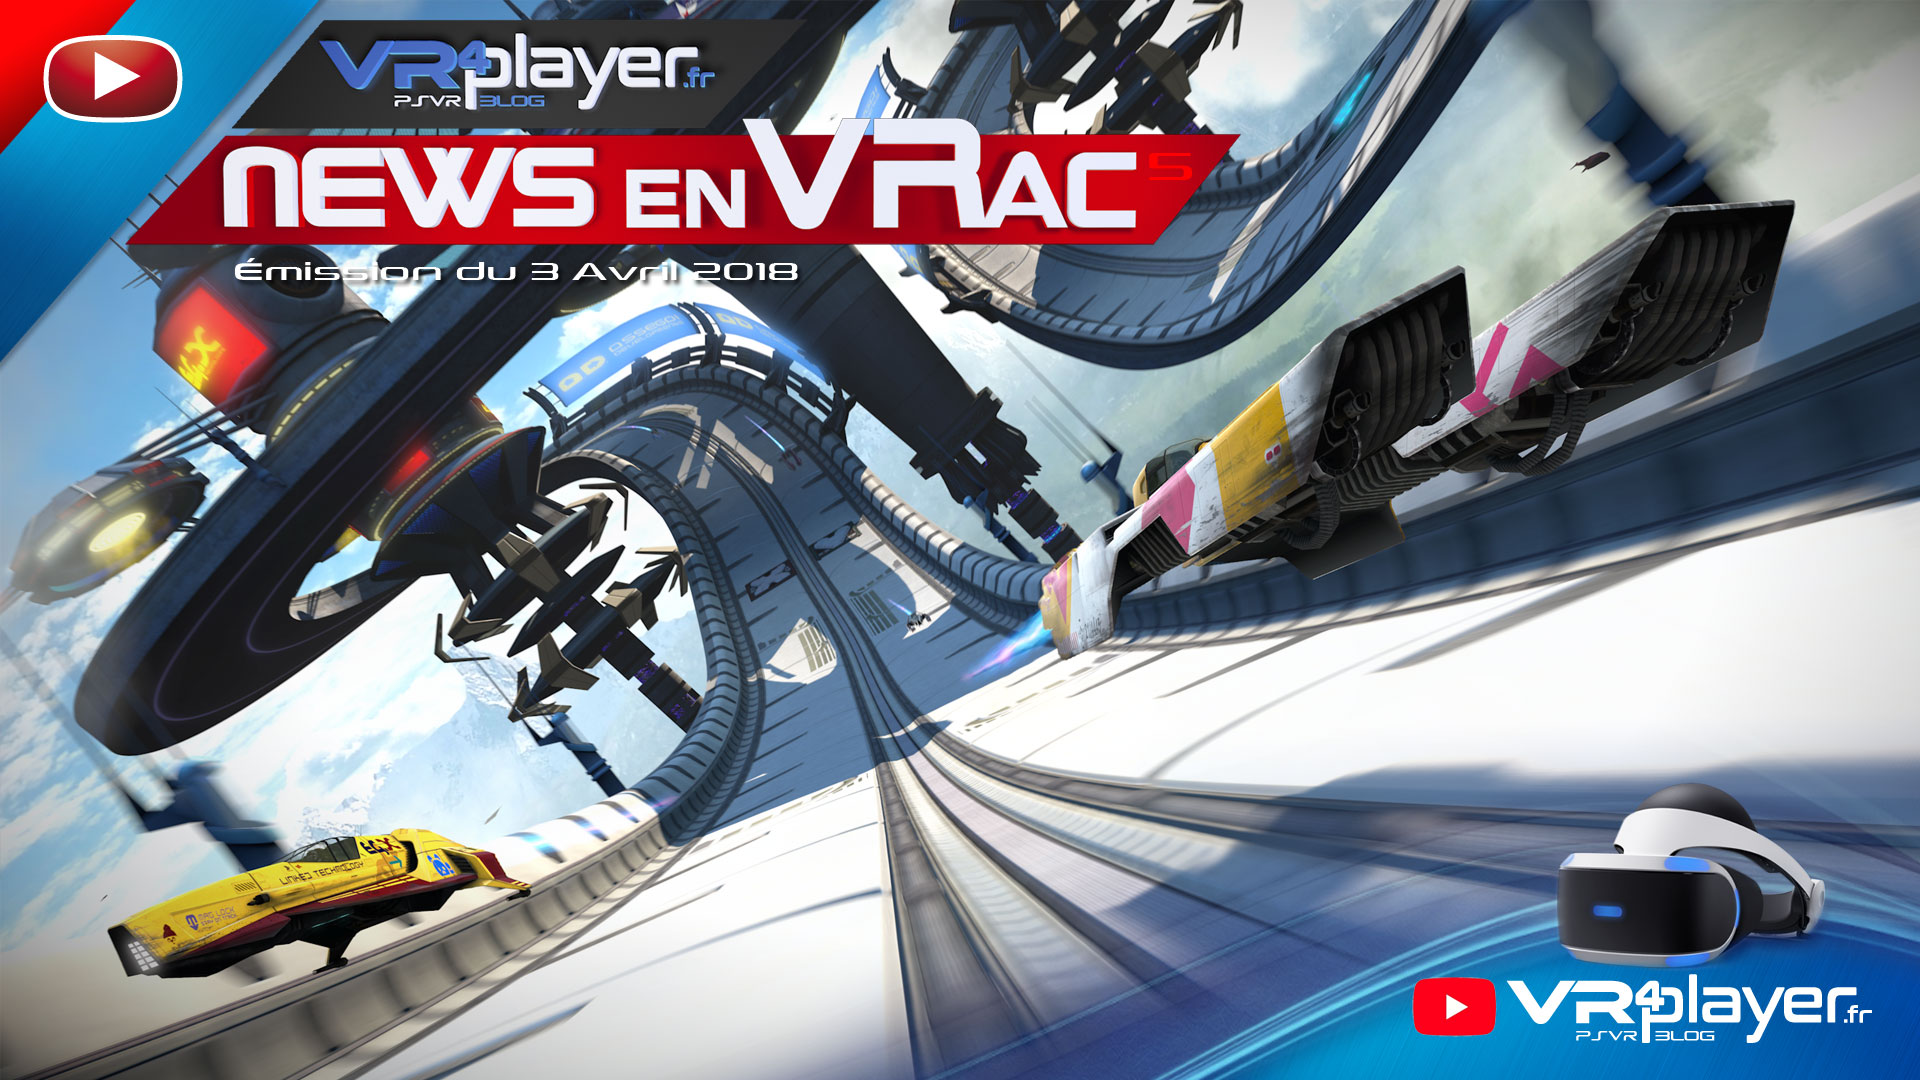 PlayStation VR PSVR, Les News en VRac émission 5 VR4player.fr